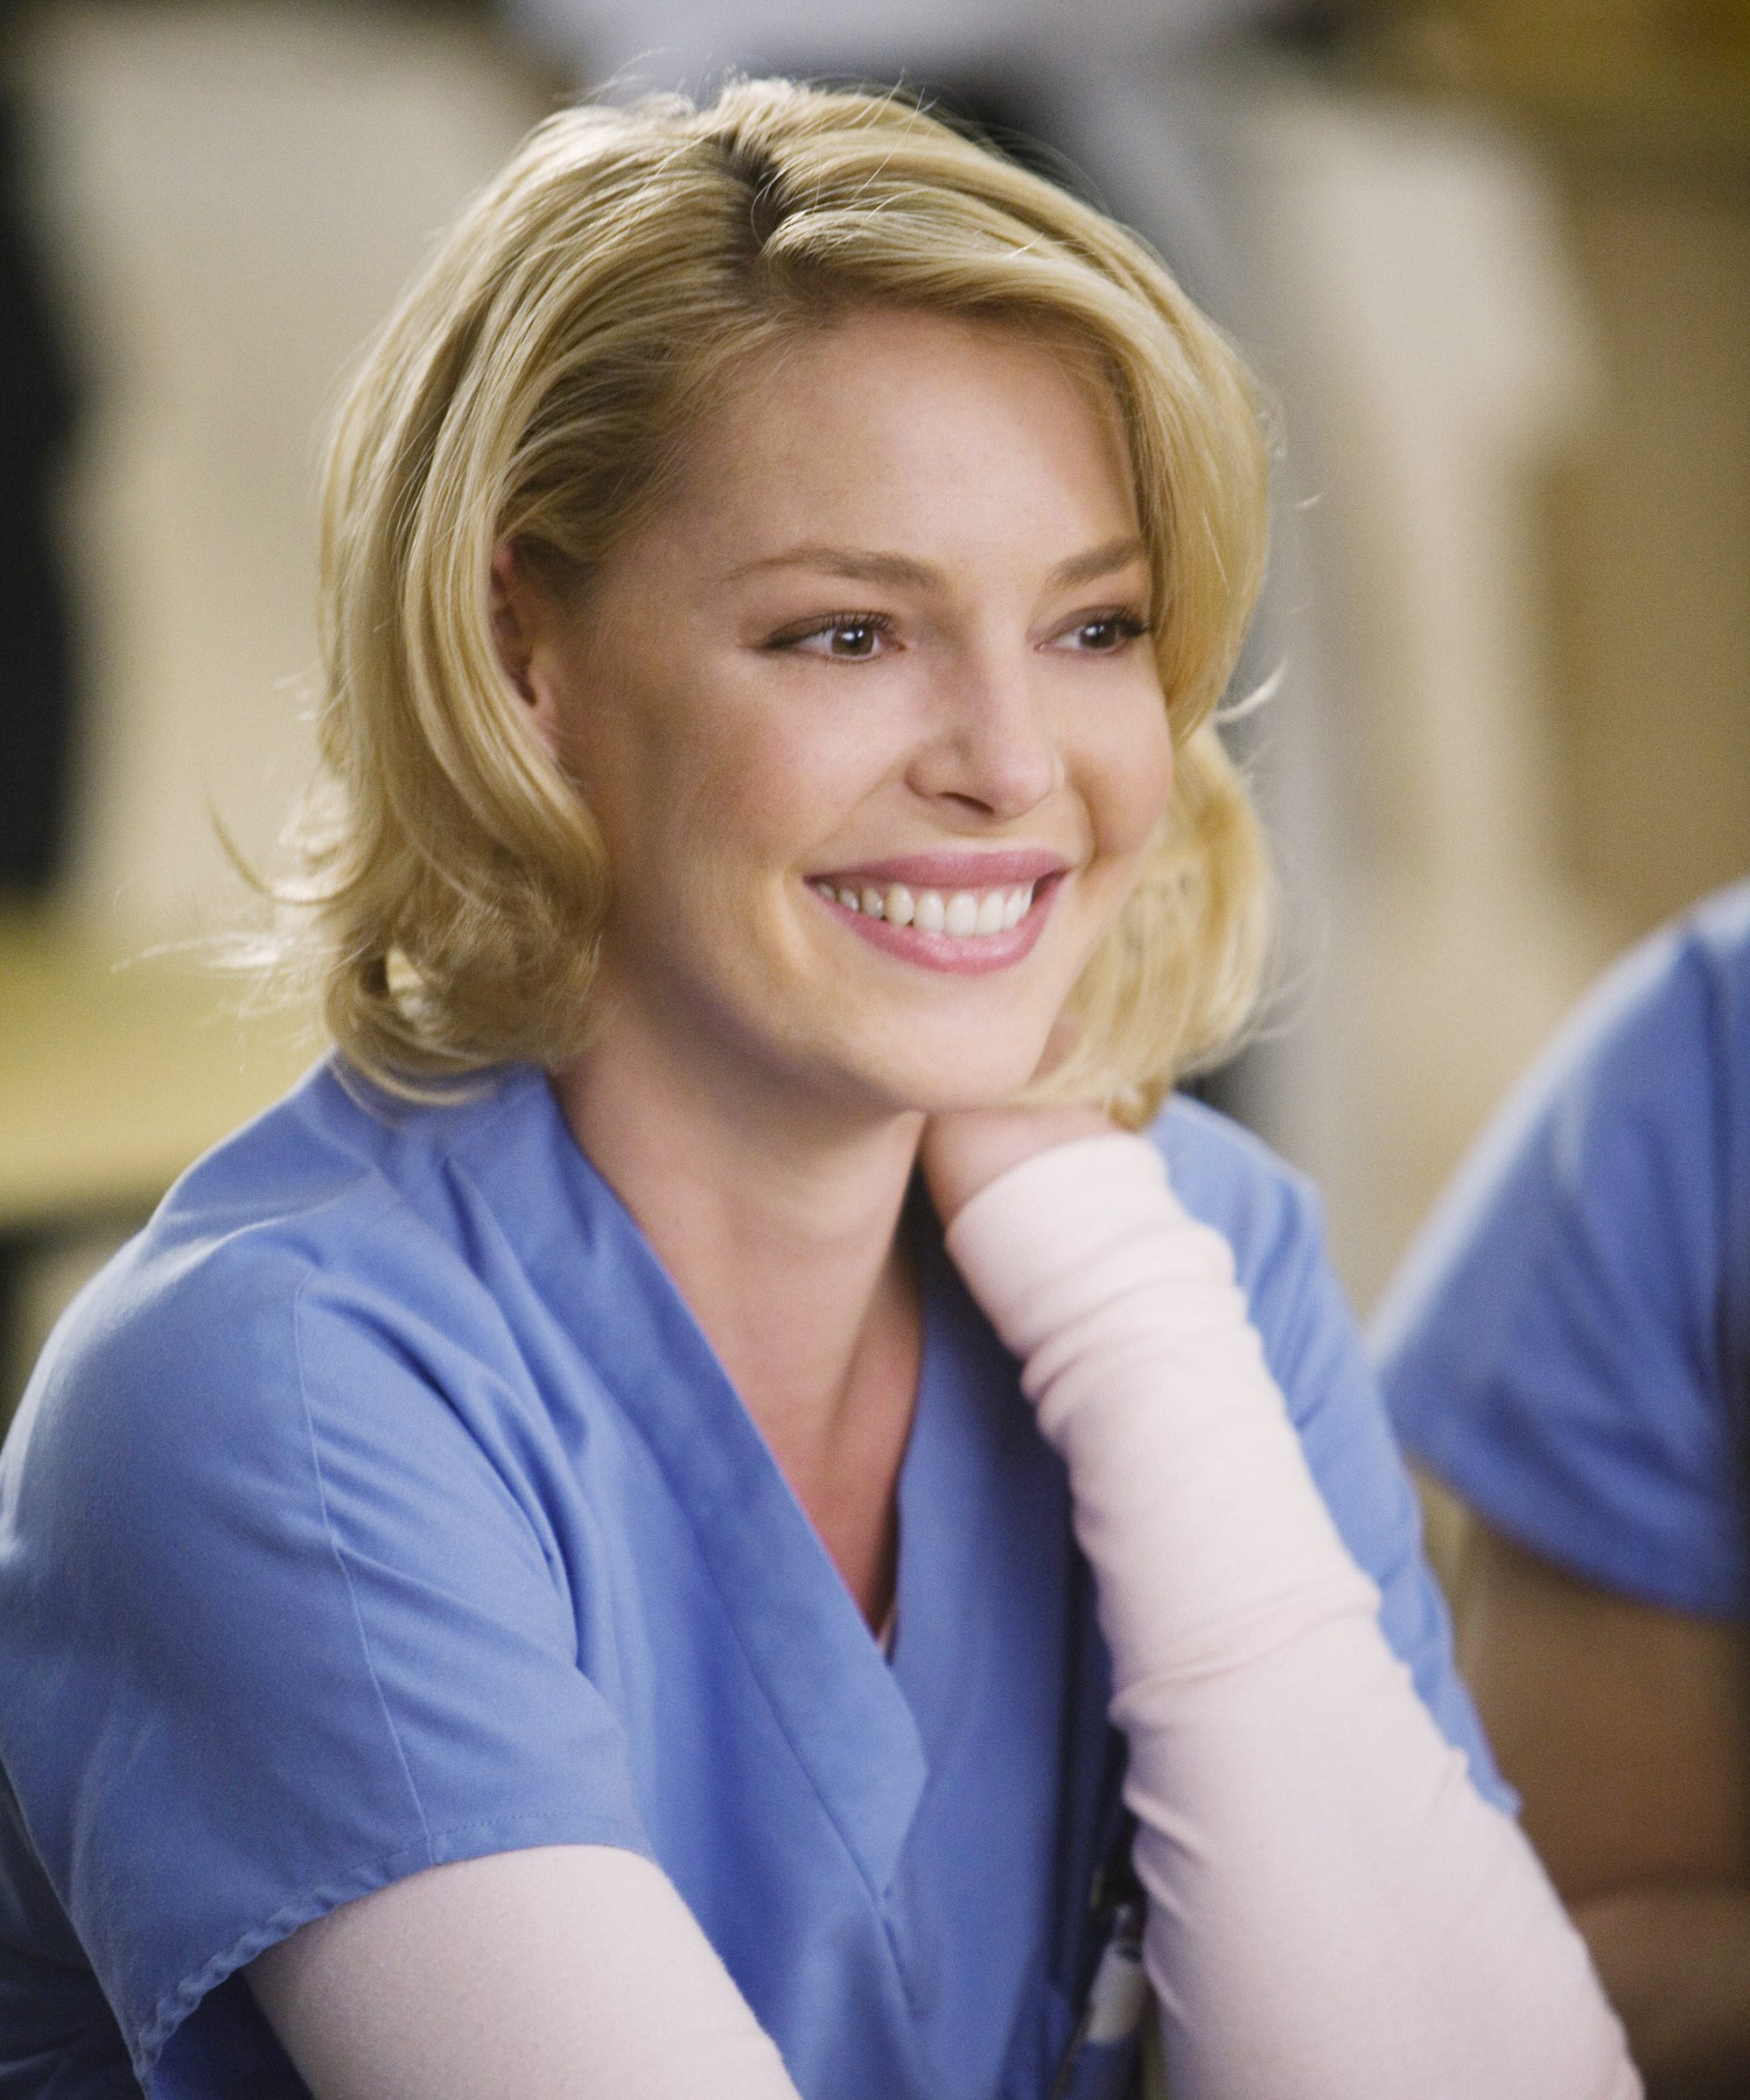 Greys Anatomy Episode 300 Izzie Stevens Return Secrets